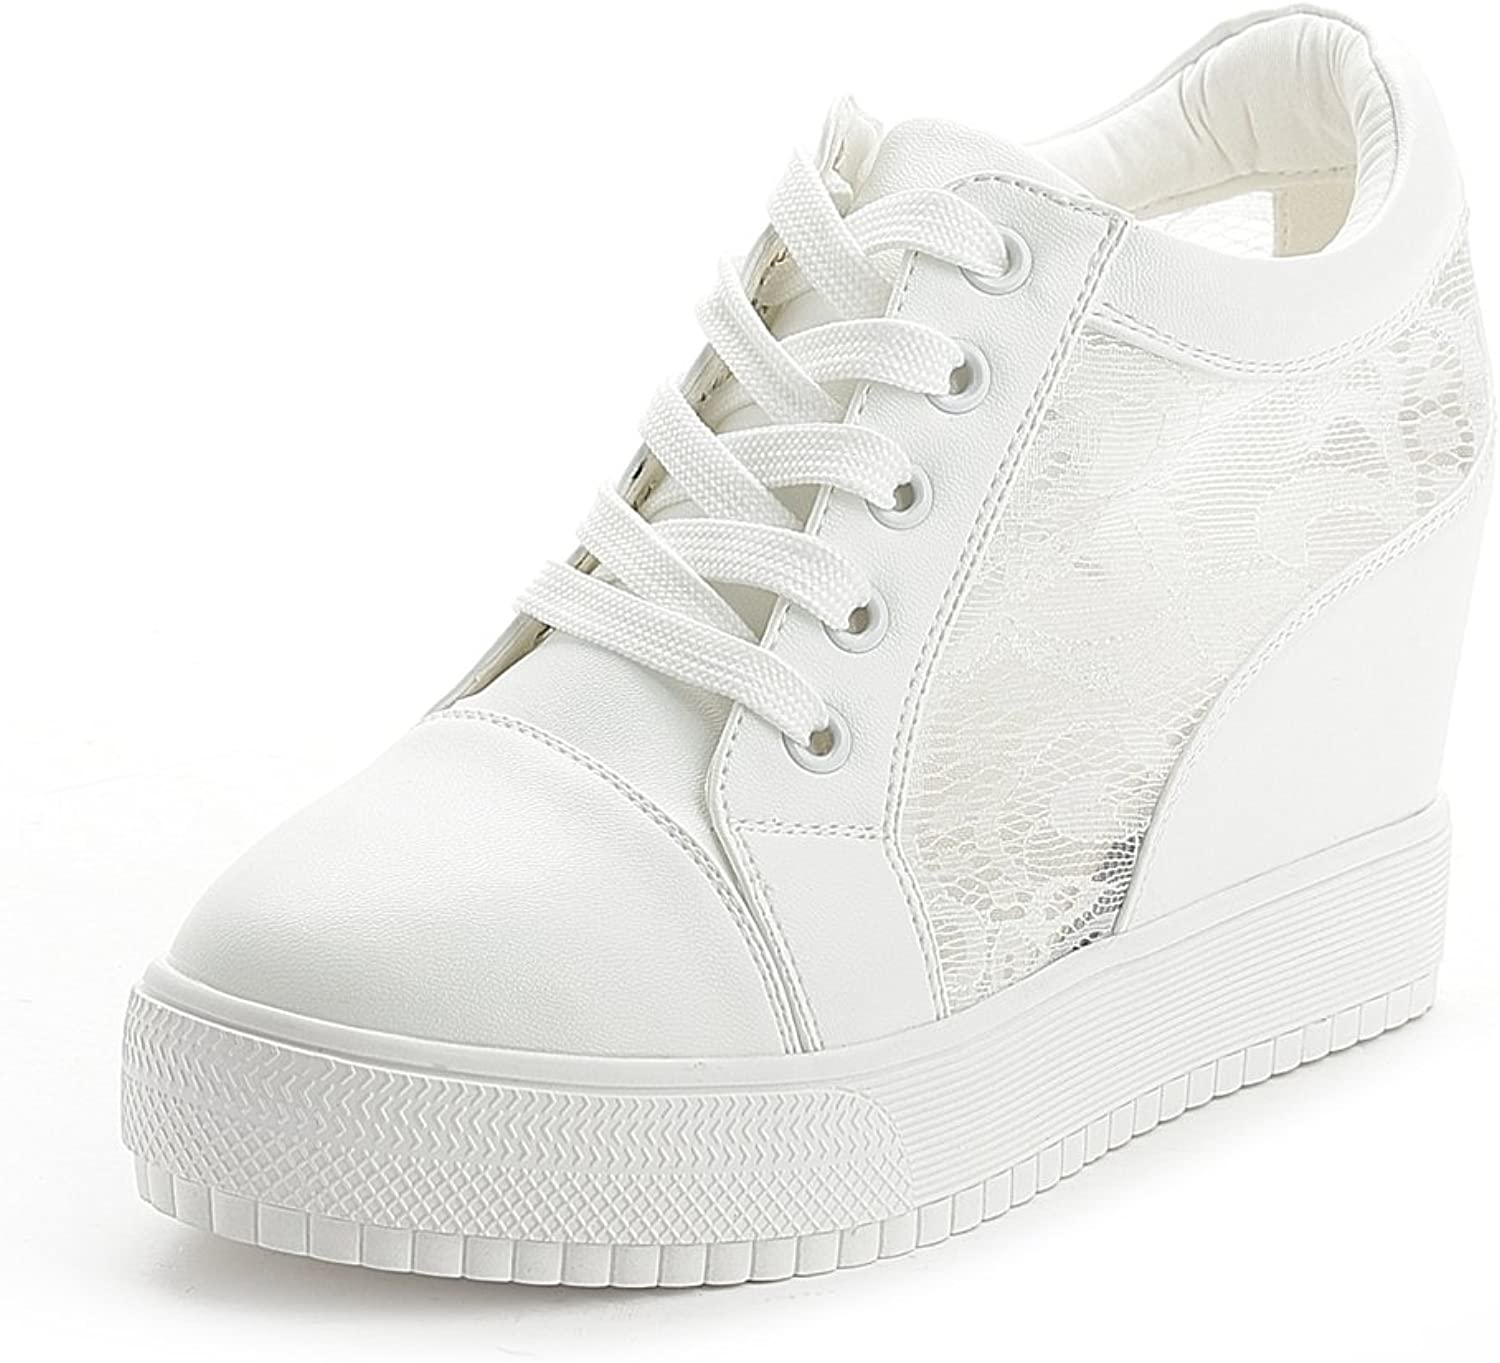 GIY Women Fashion Laces Low Top Lace-up Wedge Sneakers Platform Increased Height Casual Sports shoes